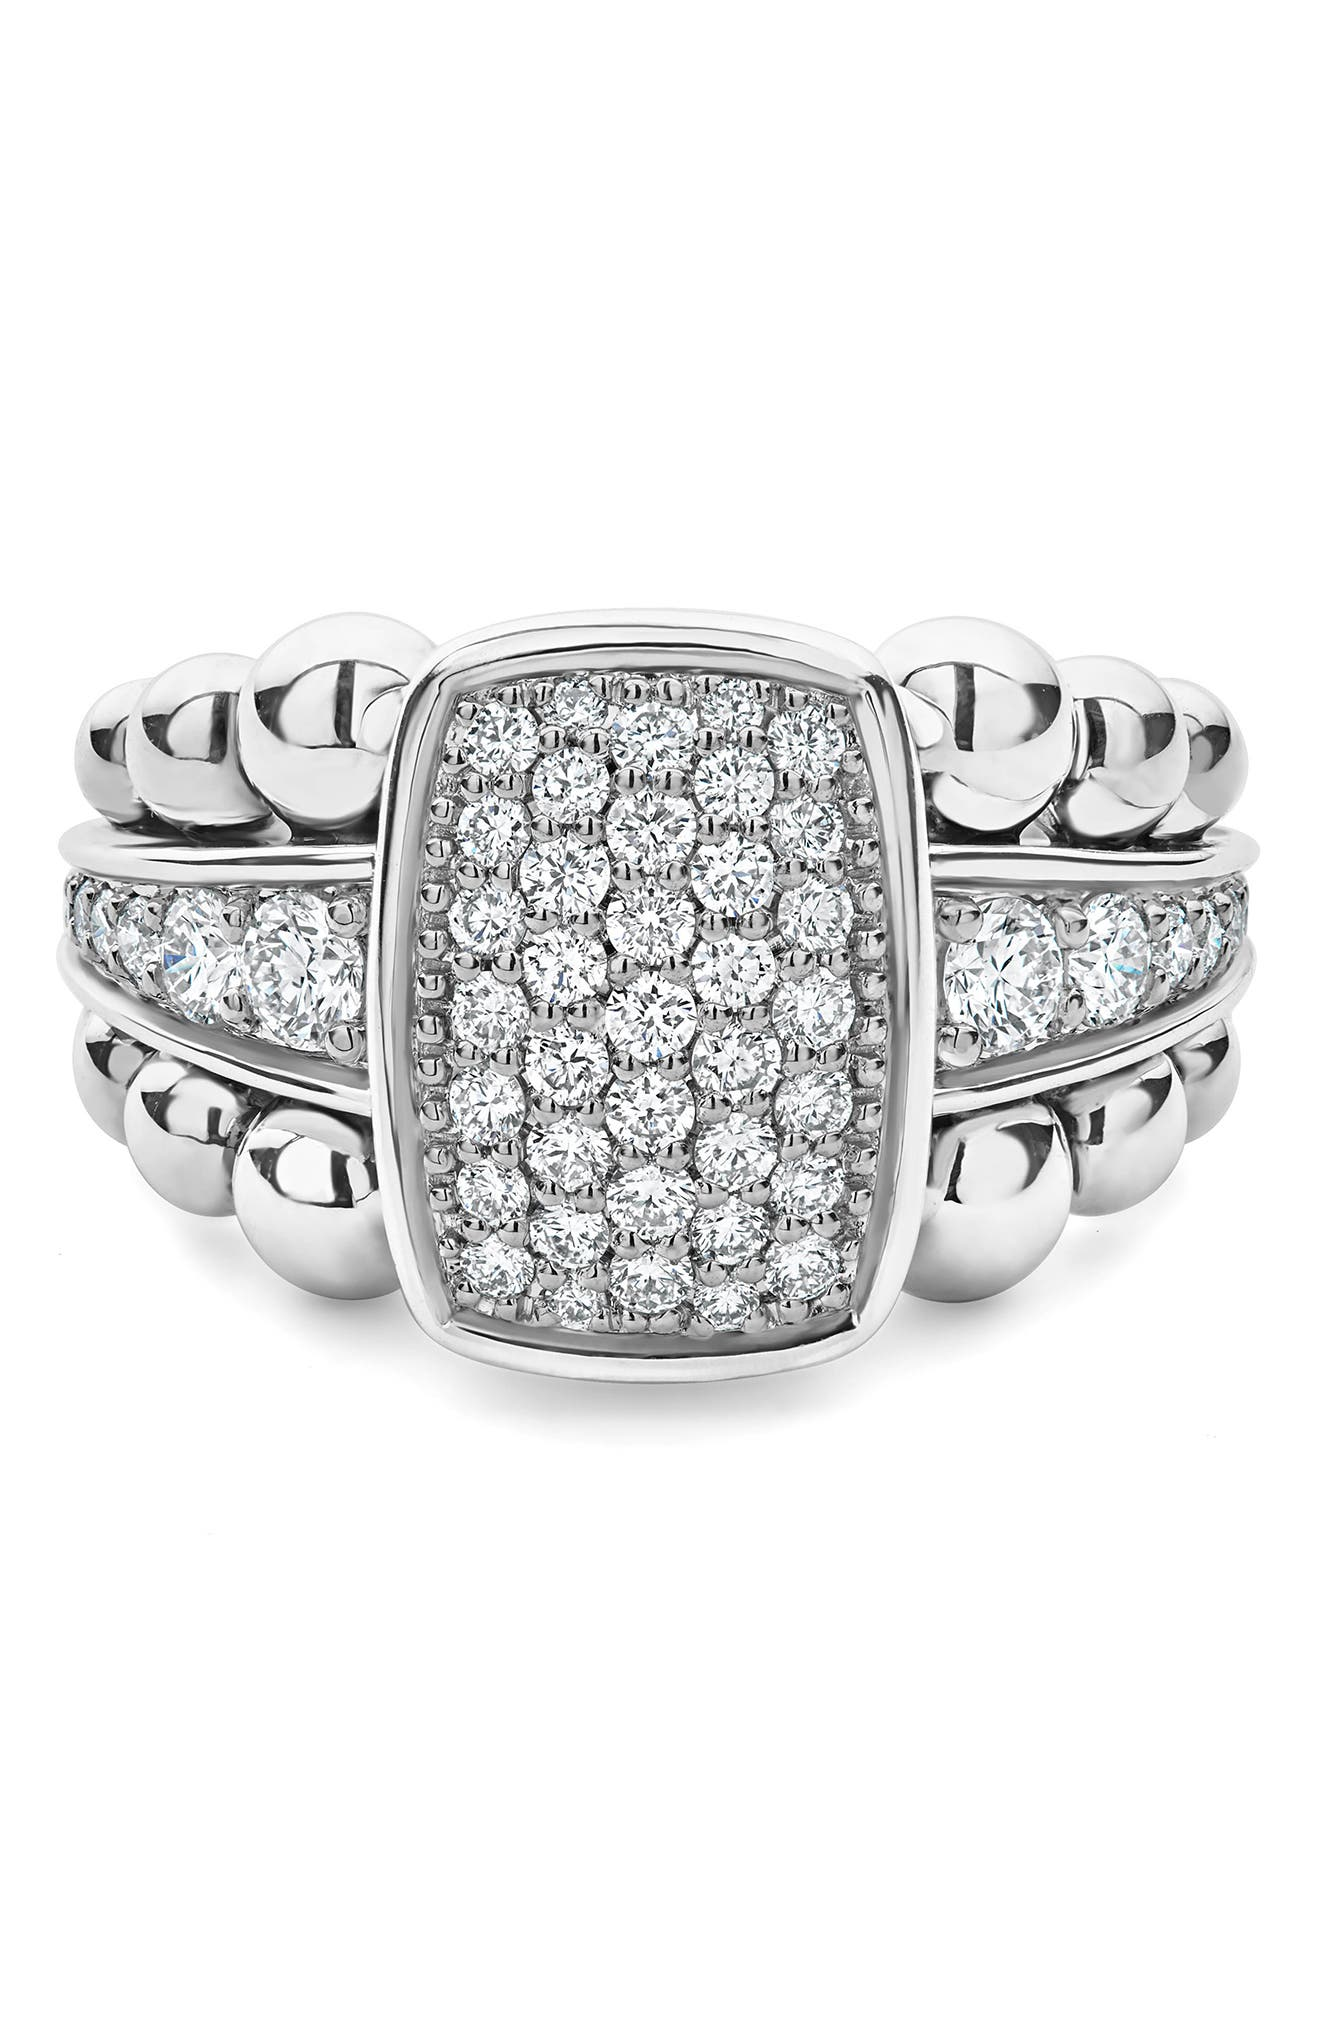 LAOGS Caviar Spark Vertical Statement Ring,                             Alternate thumbnail 5, color,                             SILVER/ DIAMOND